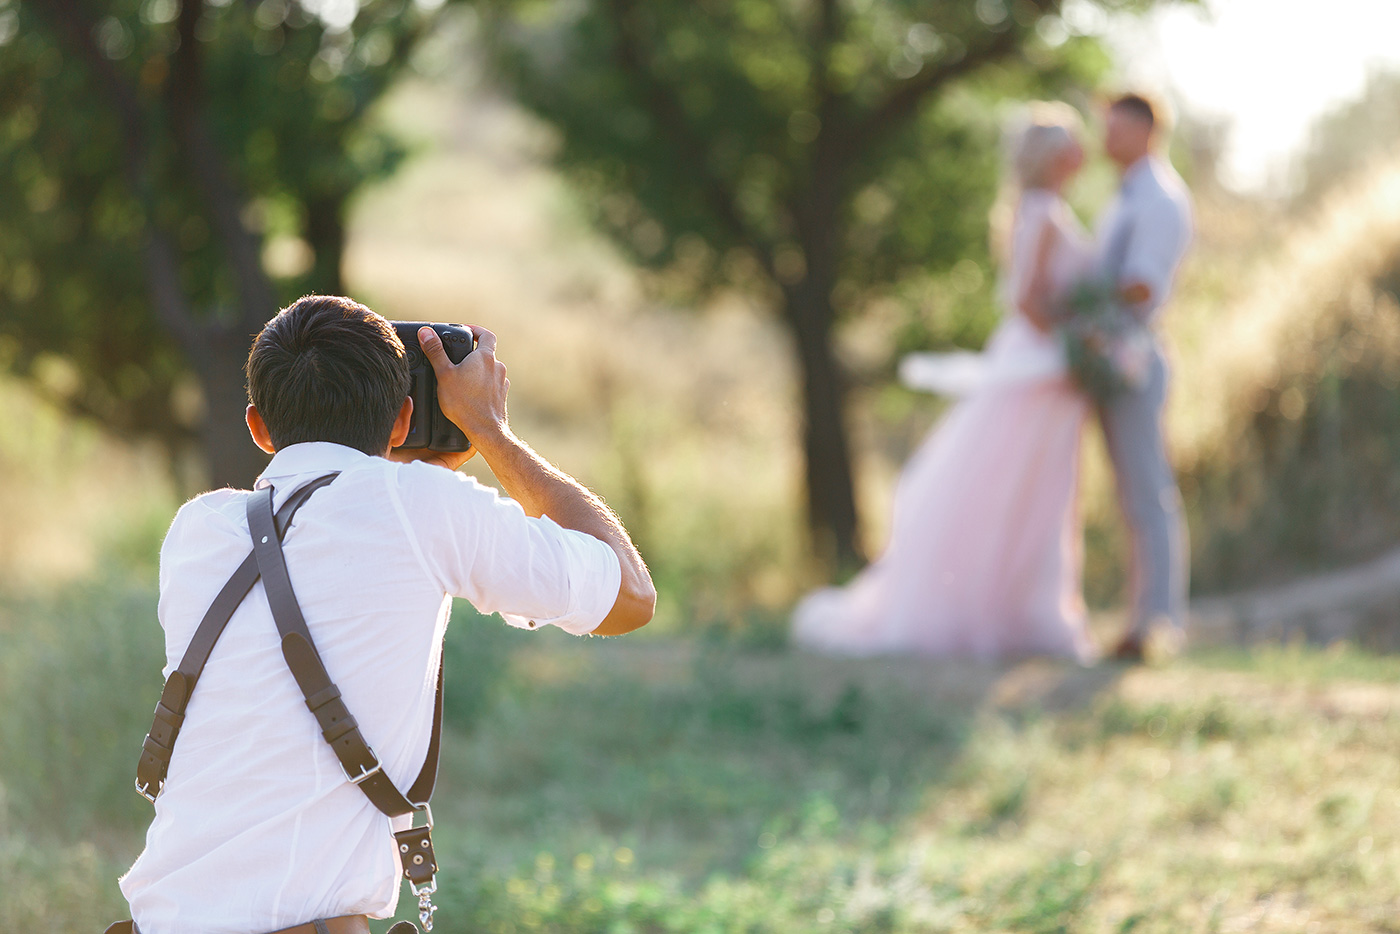 Most Difficult Things About Being a Wedding Photographer